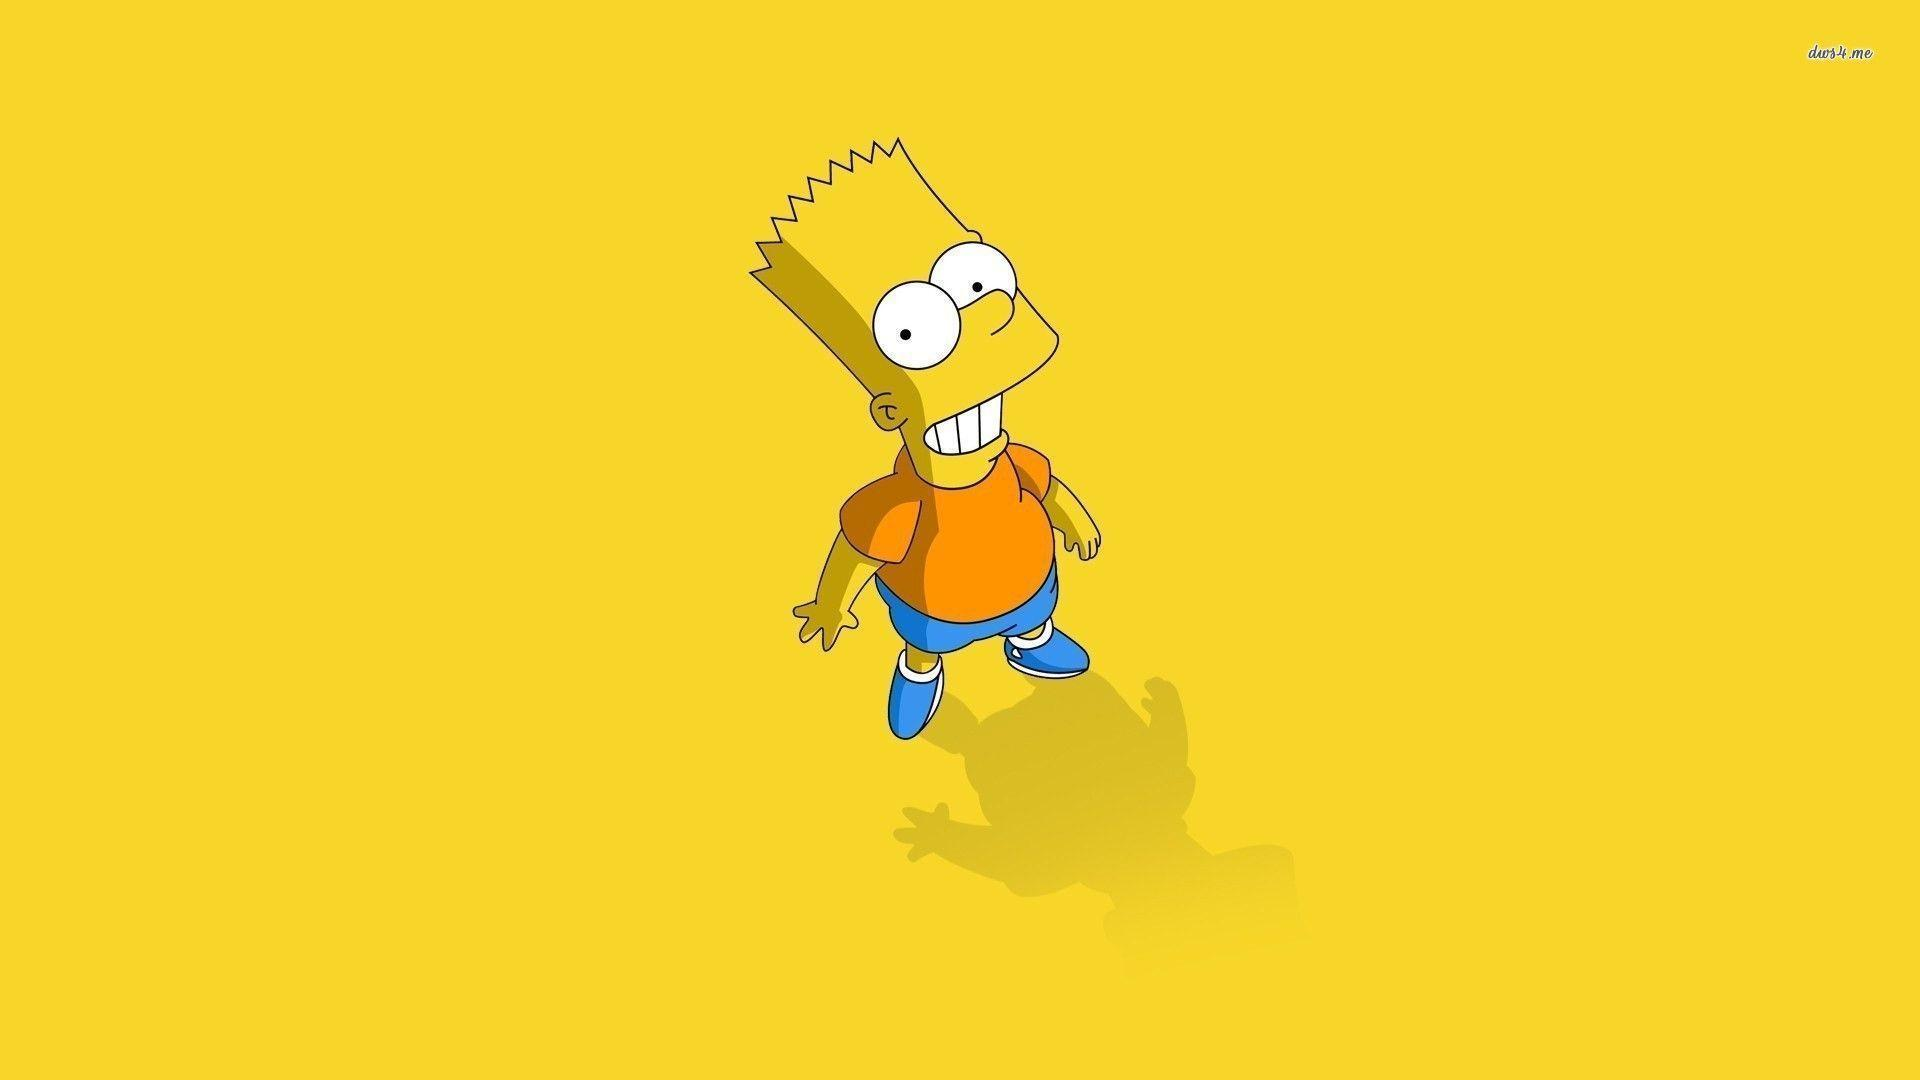 Bart Simpson Wallpapers Top Free Bart Simpson Backgrounds